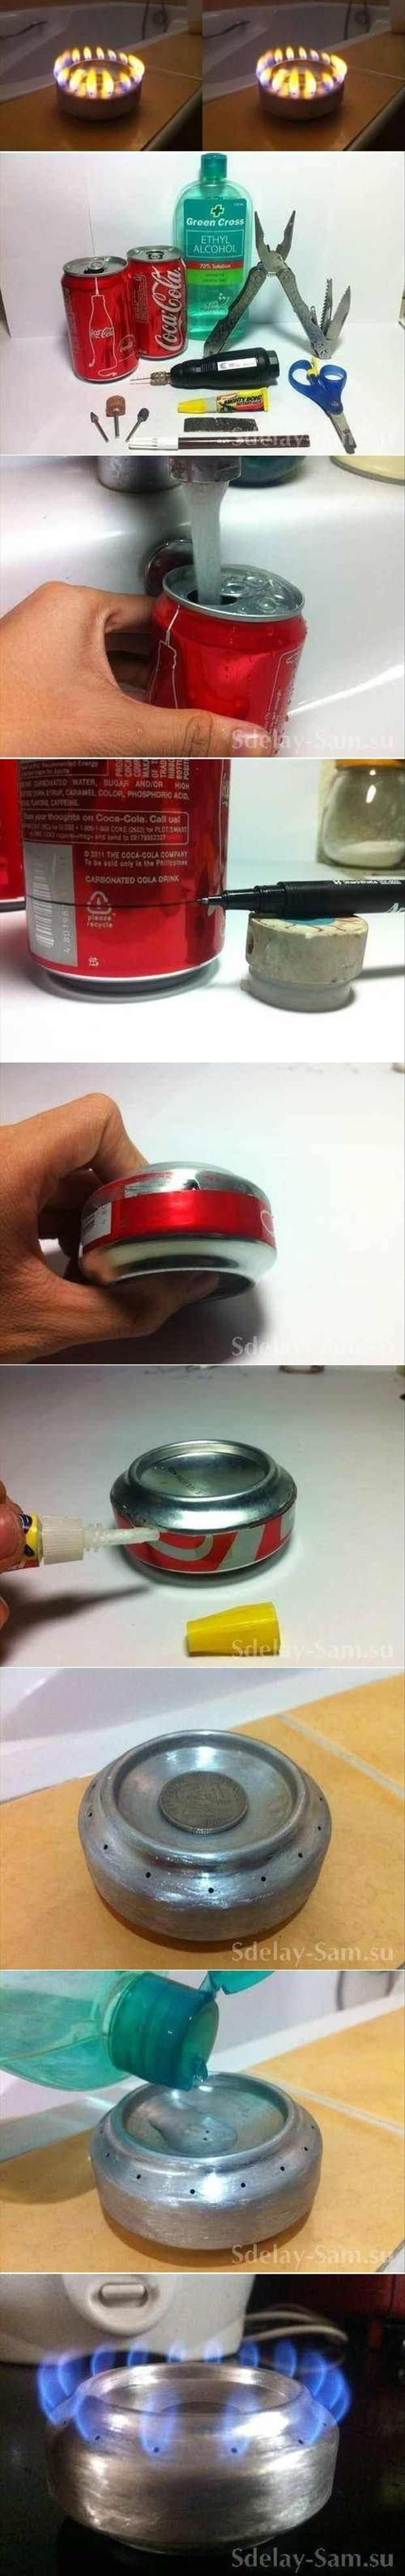 DIY alcohol stove from a soda can